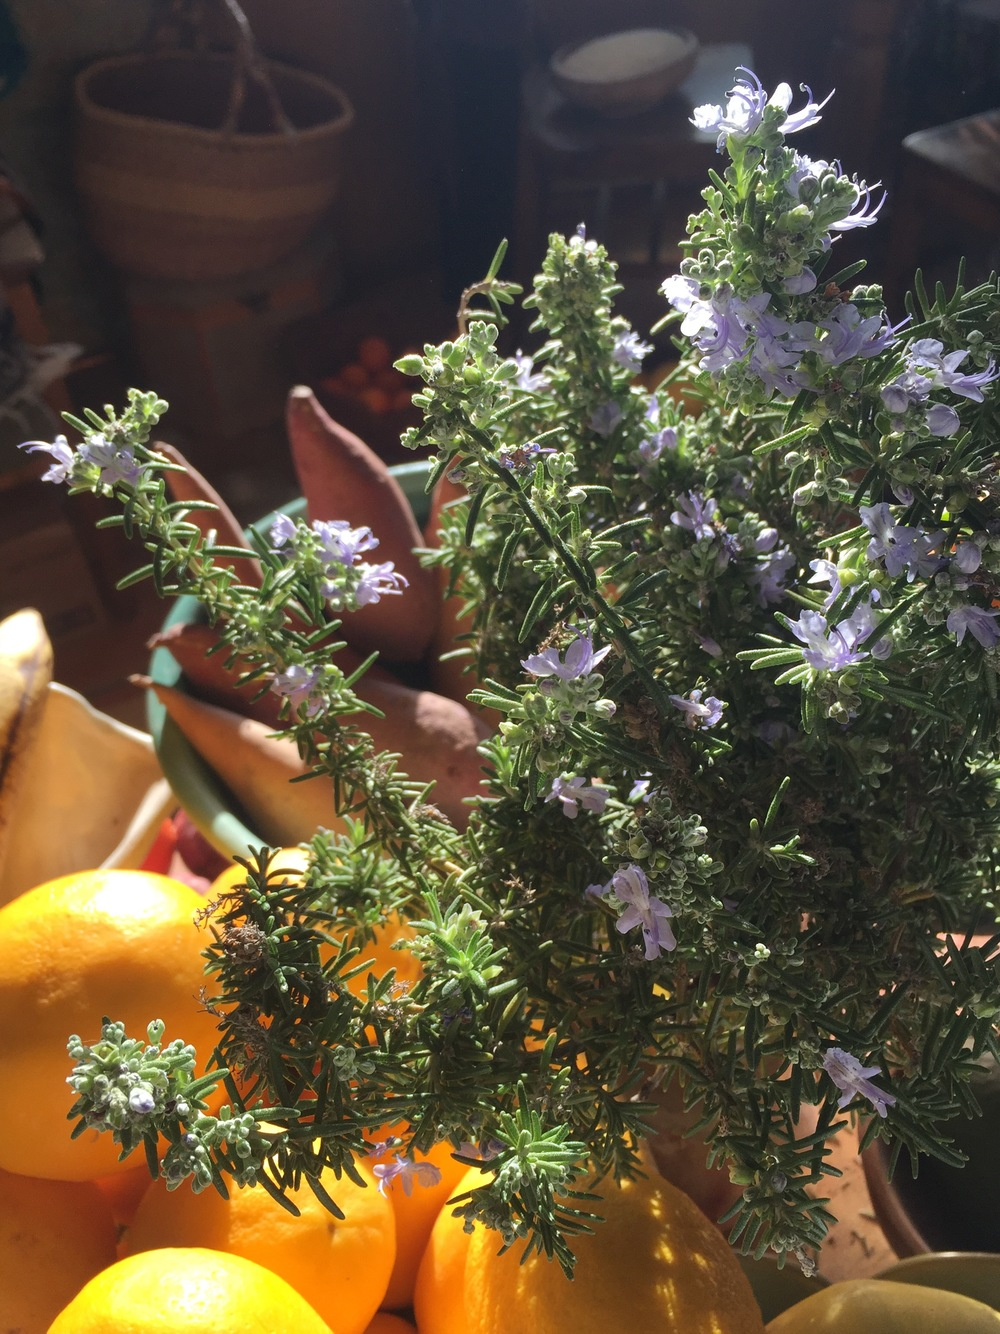 Fresh desert rosemary, photo by Angela de la Agua.